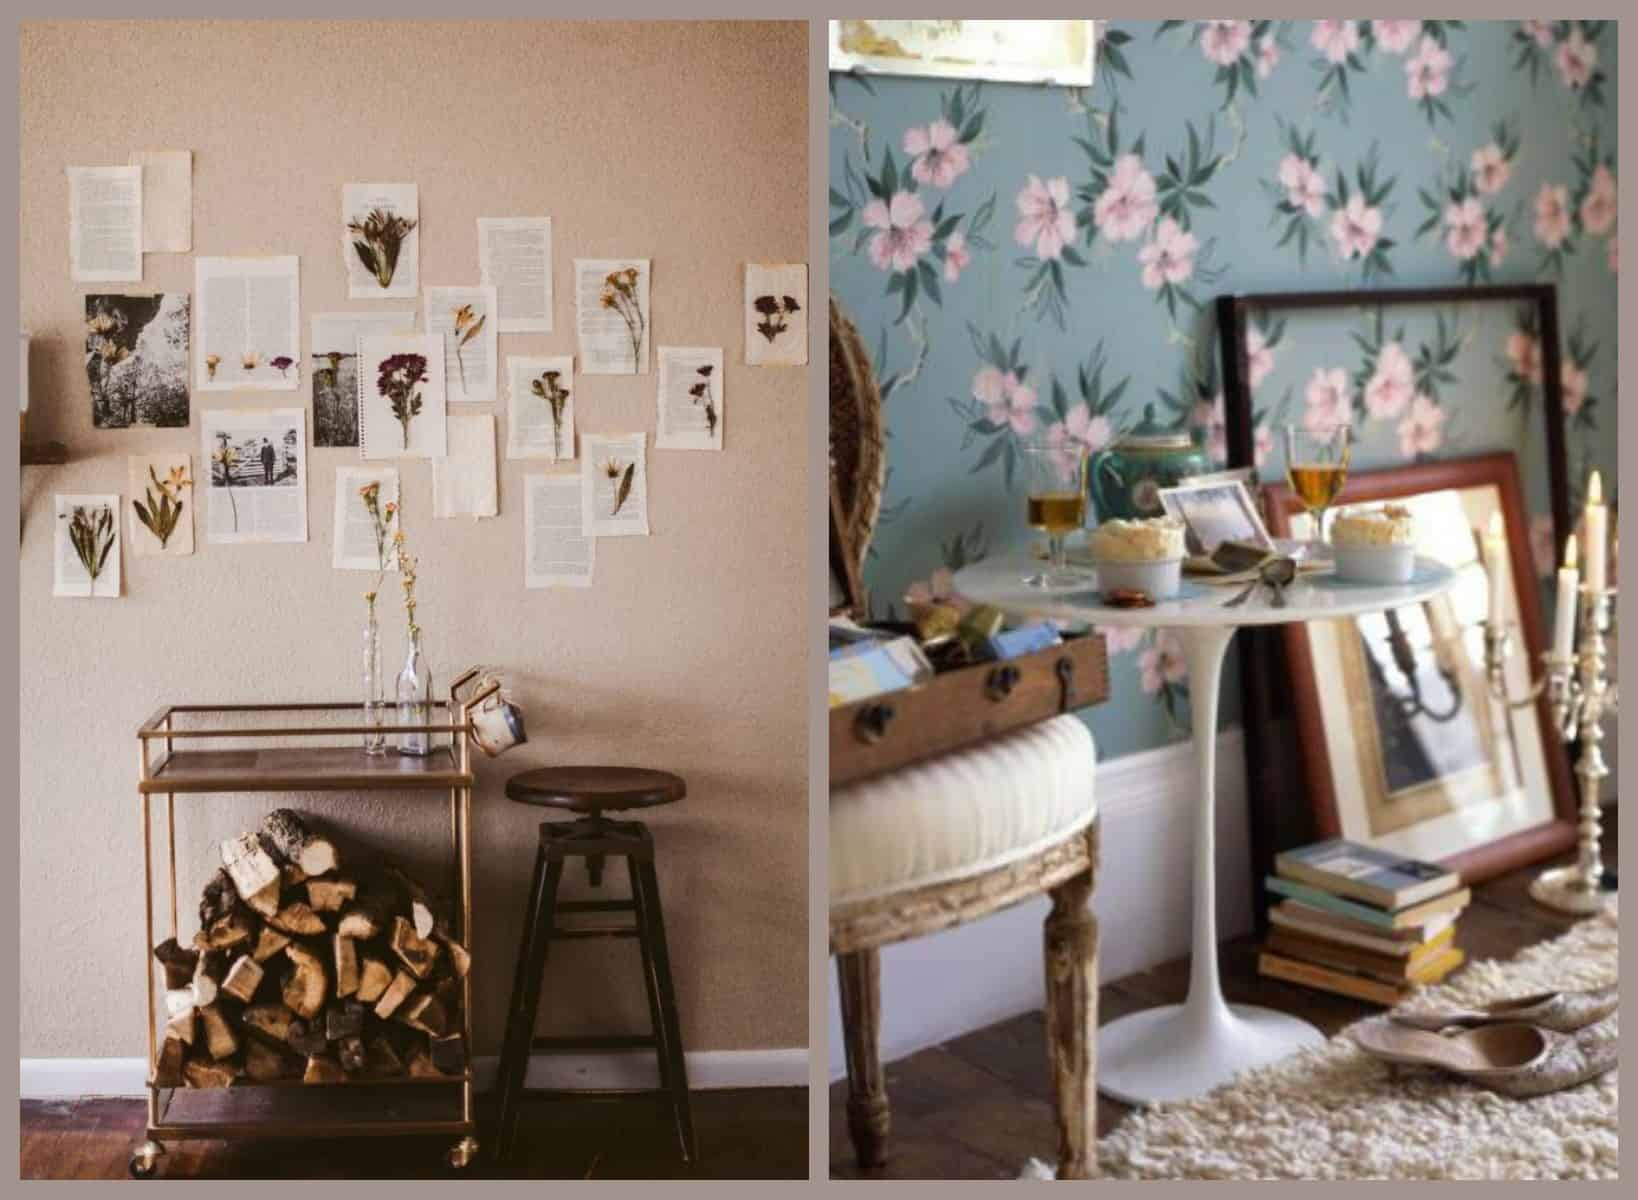 Diy 10 idee su come decorare una parete di casa for Idee originali per arredare appartamenti